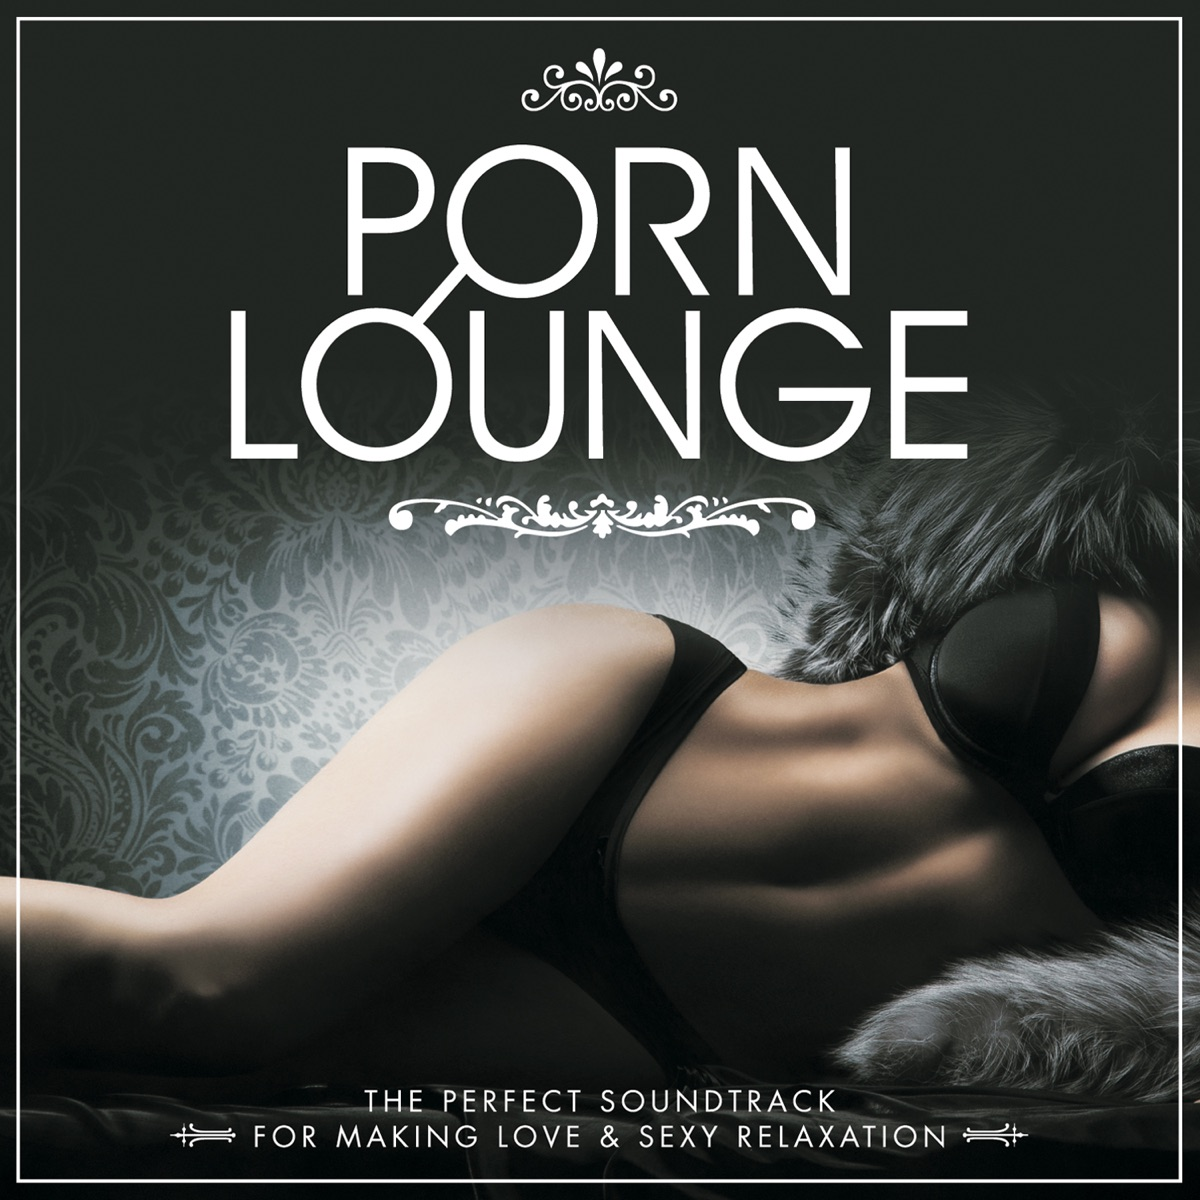 Sexy songs sex music love making relaxation music